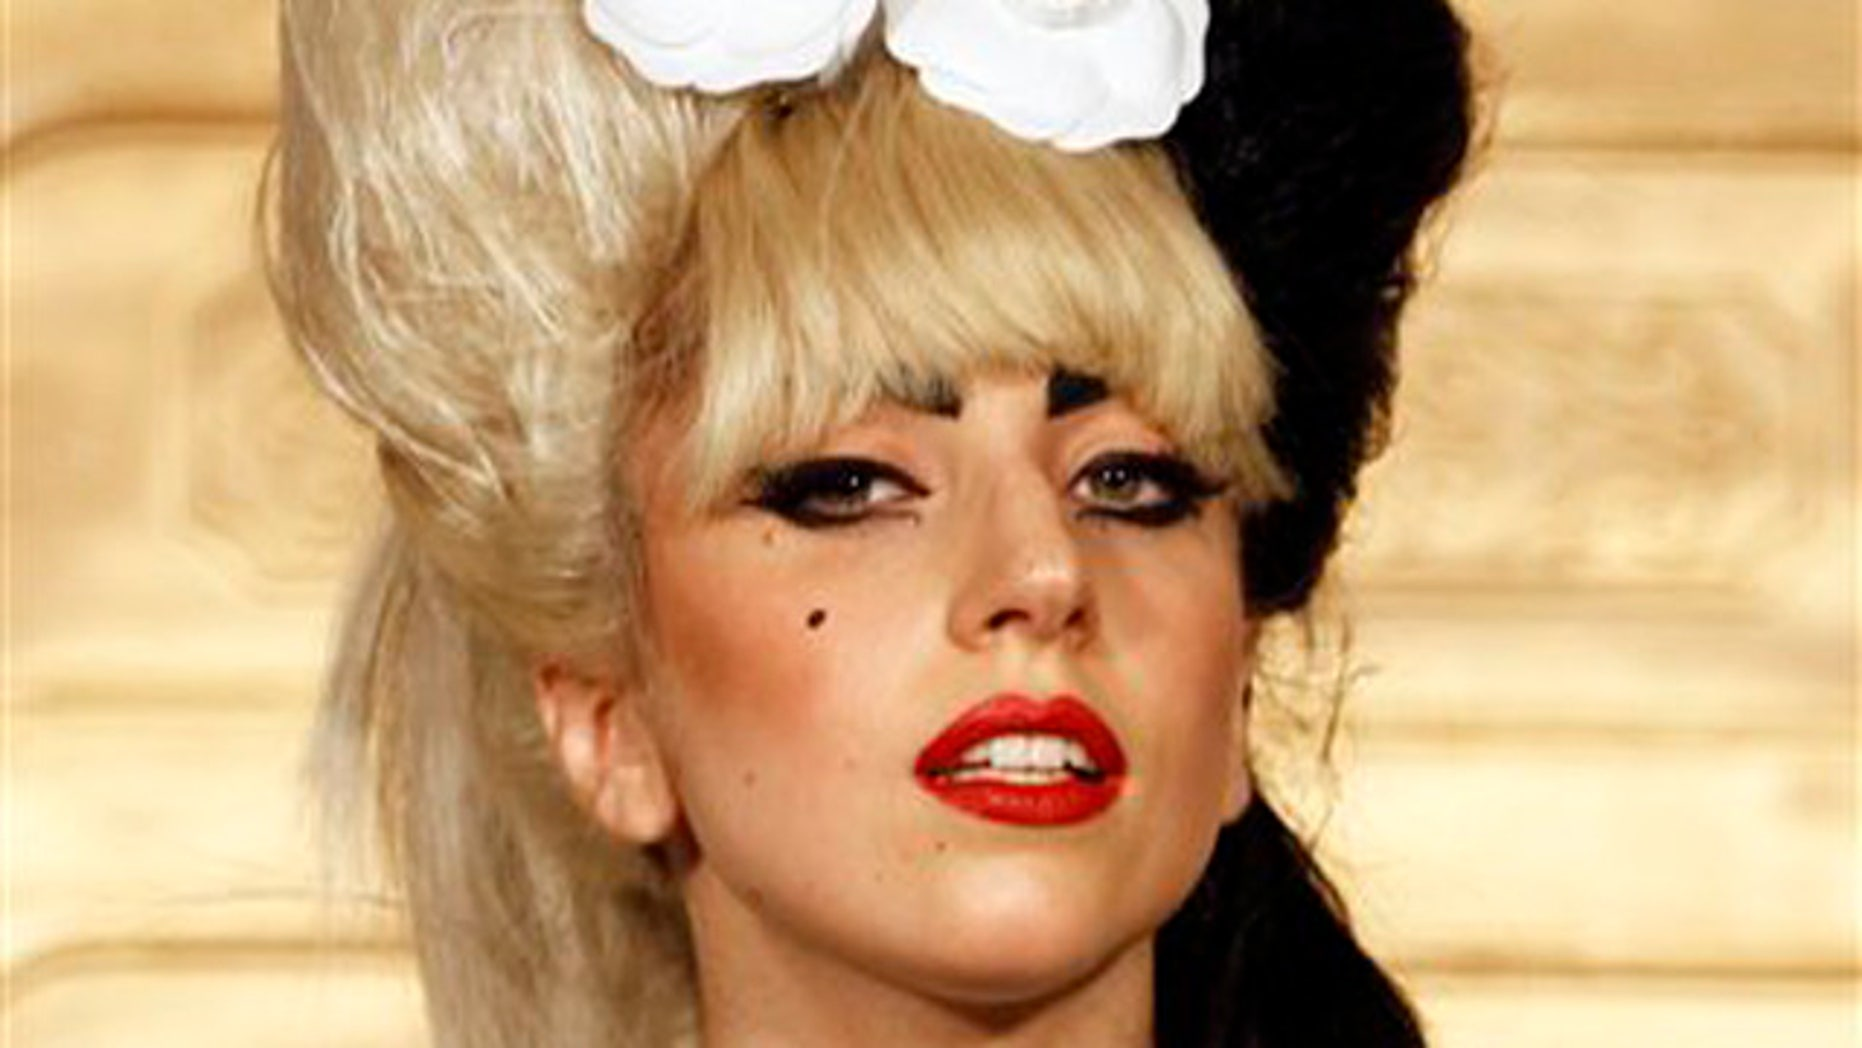 """In this July 4, 2011 file photo, singer Lady Gaga attends a news conference in Taipei, Taiwan to promote her new album """"Born This Way""""."""